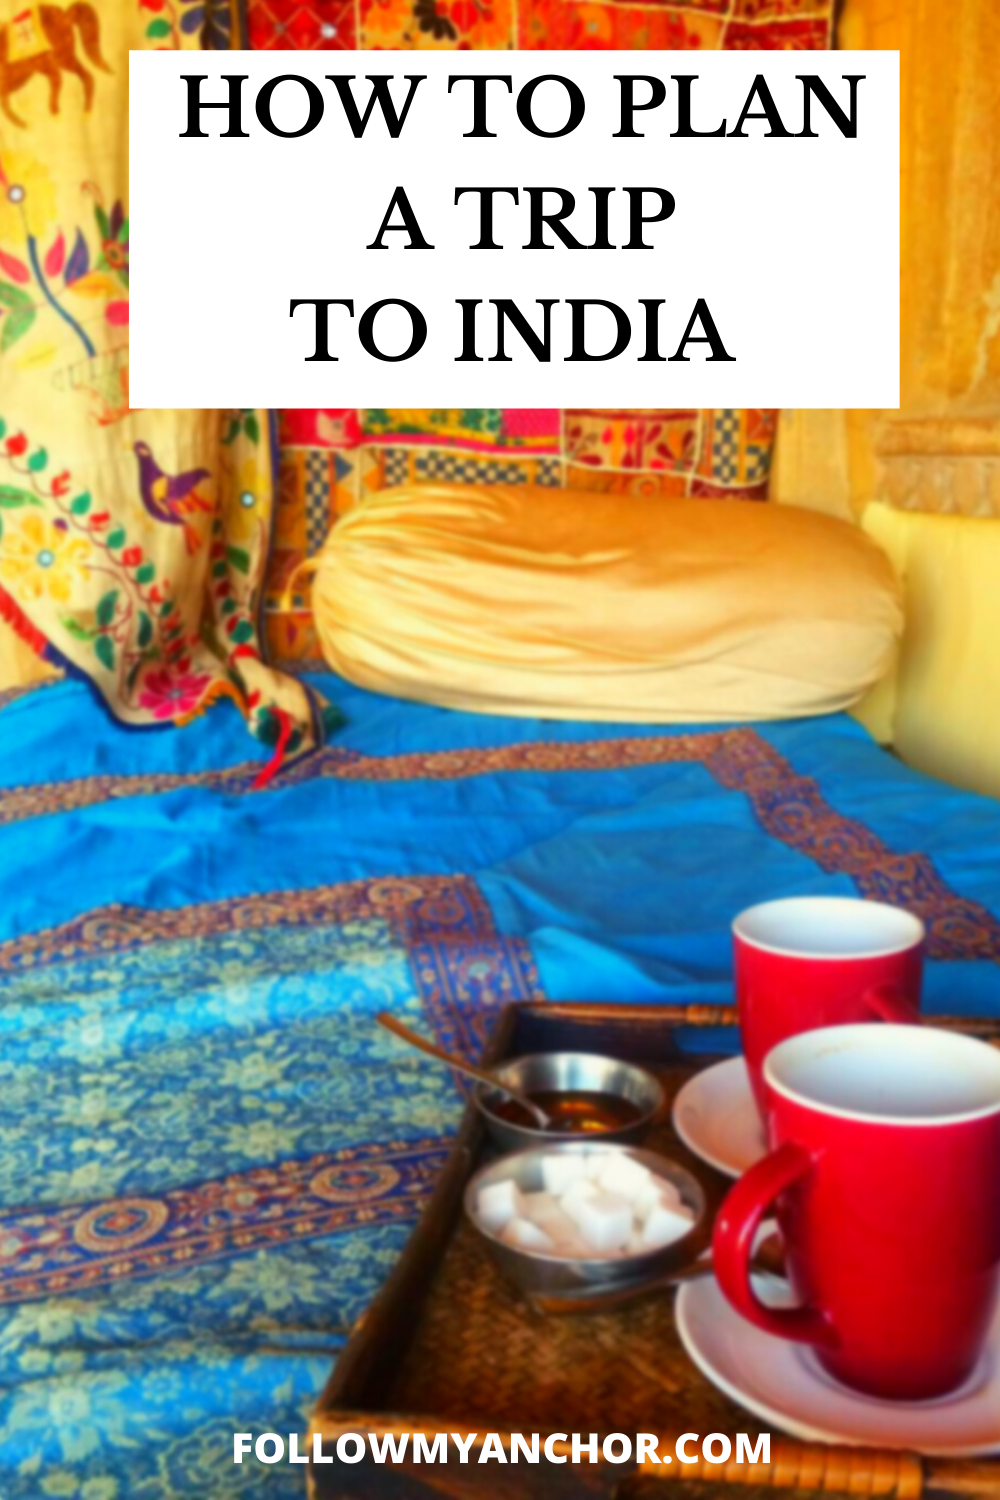 PLANNING A TRIP TO INDIA: THE ULTIMATE GUIDE FOR FIRST TIMERS